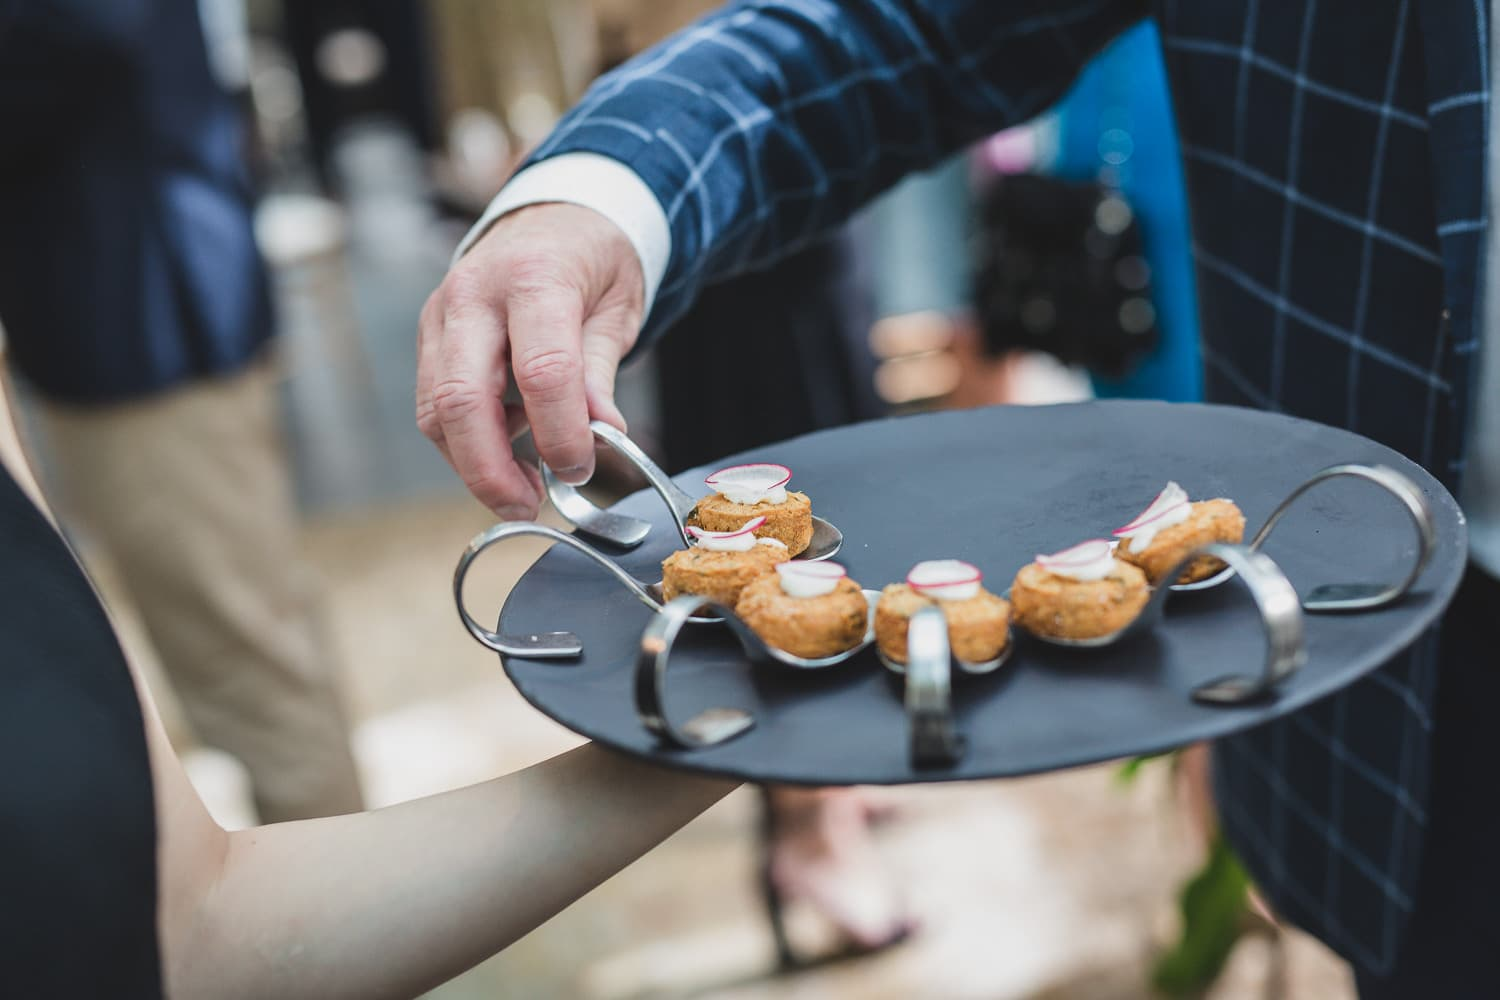 canape brunch at vancouver club wedding